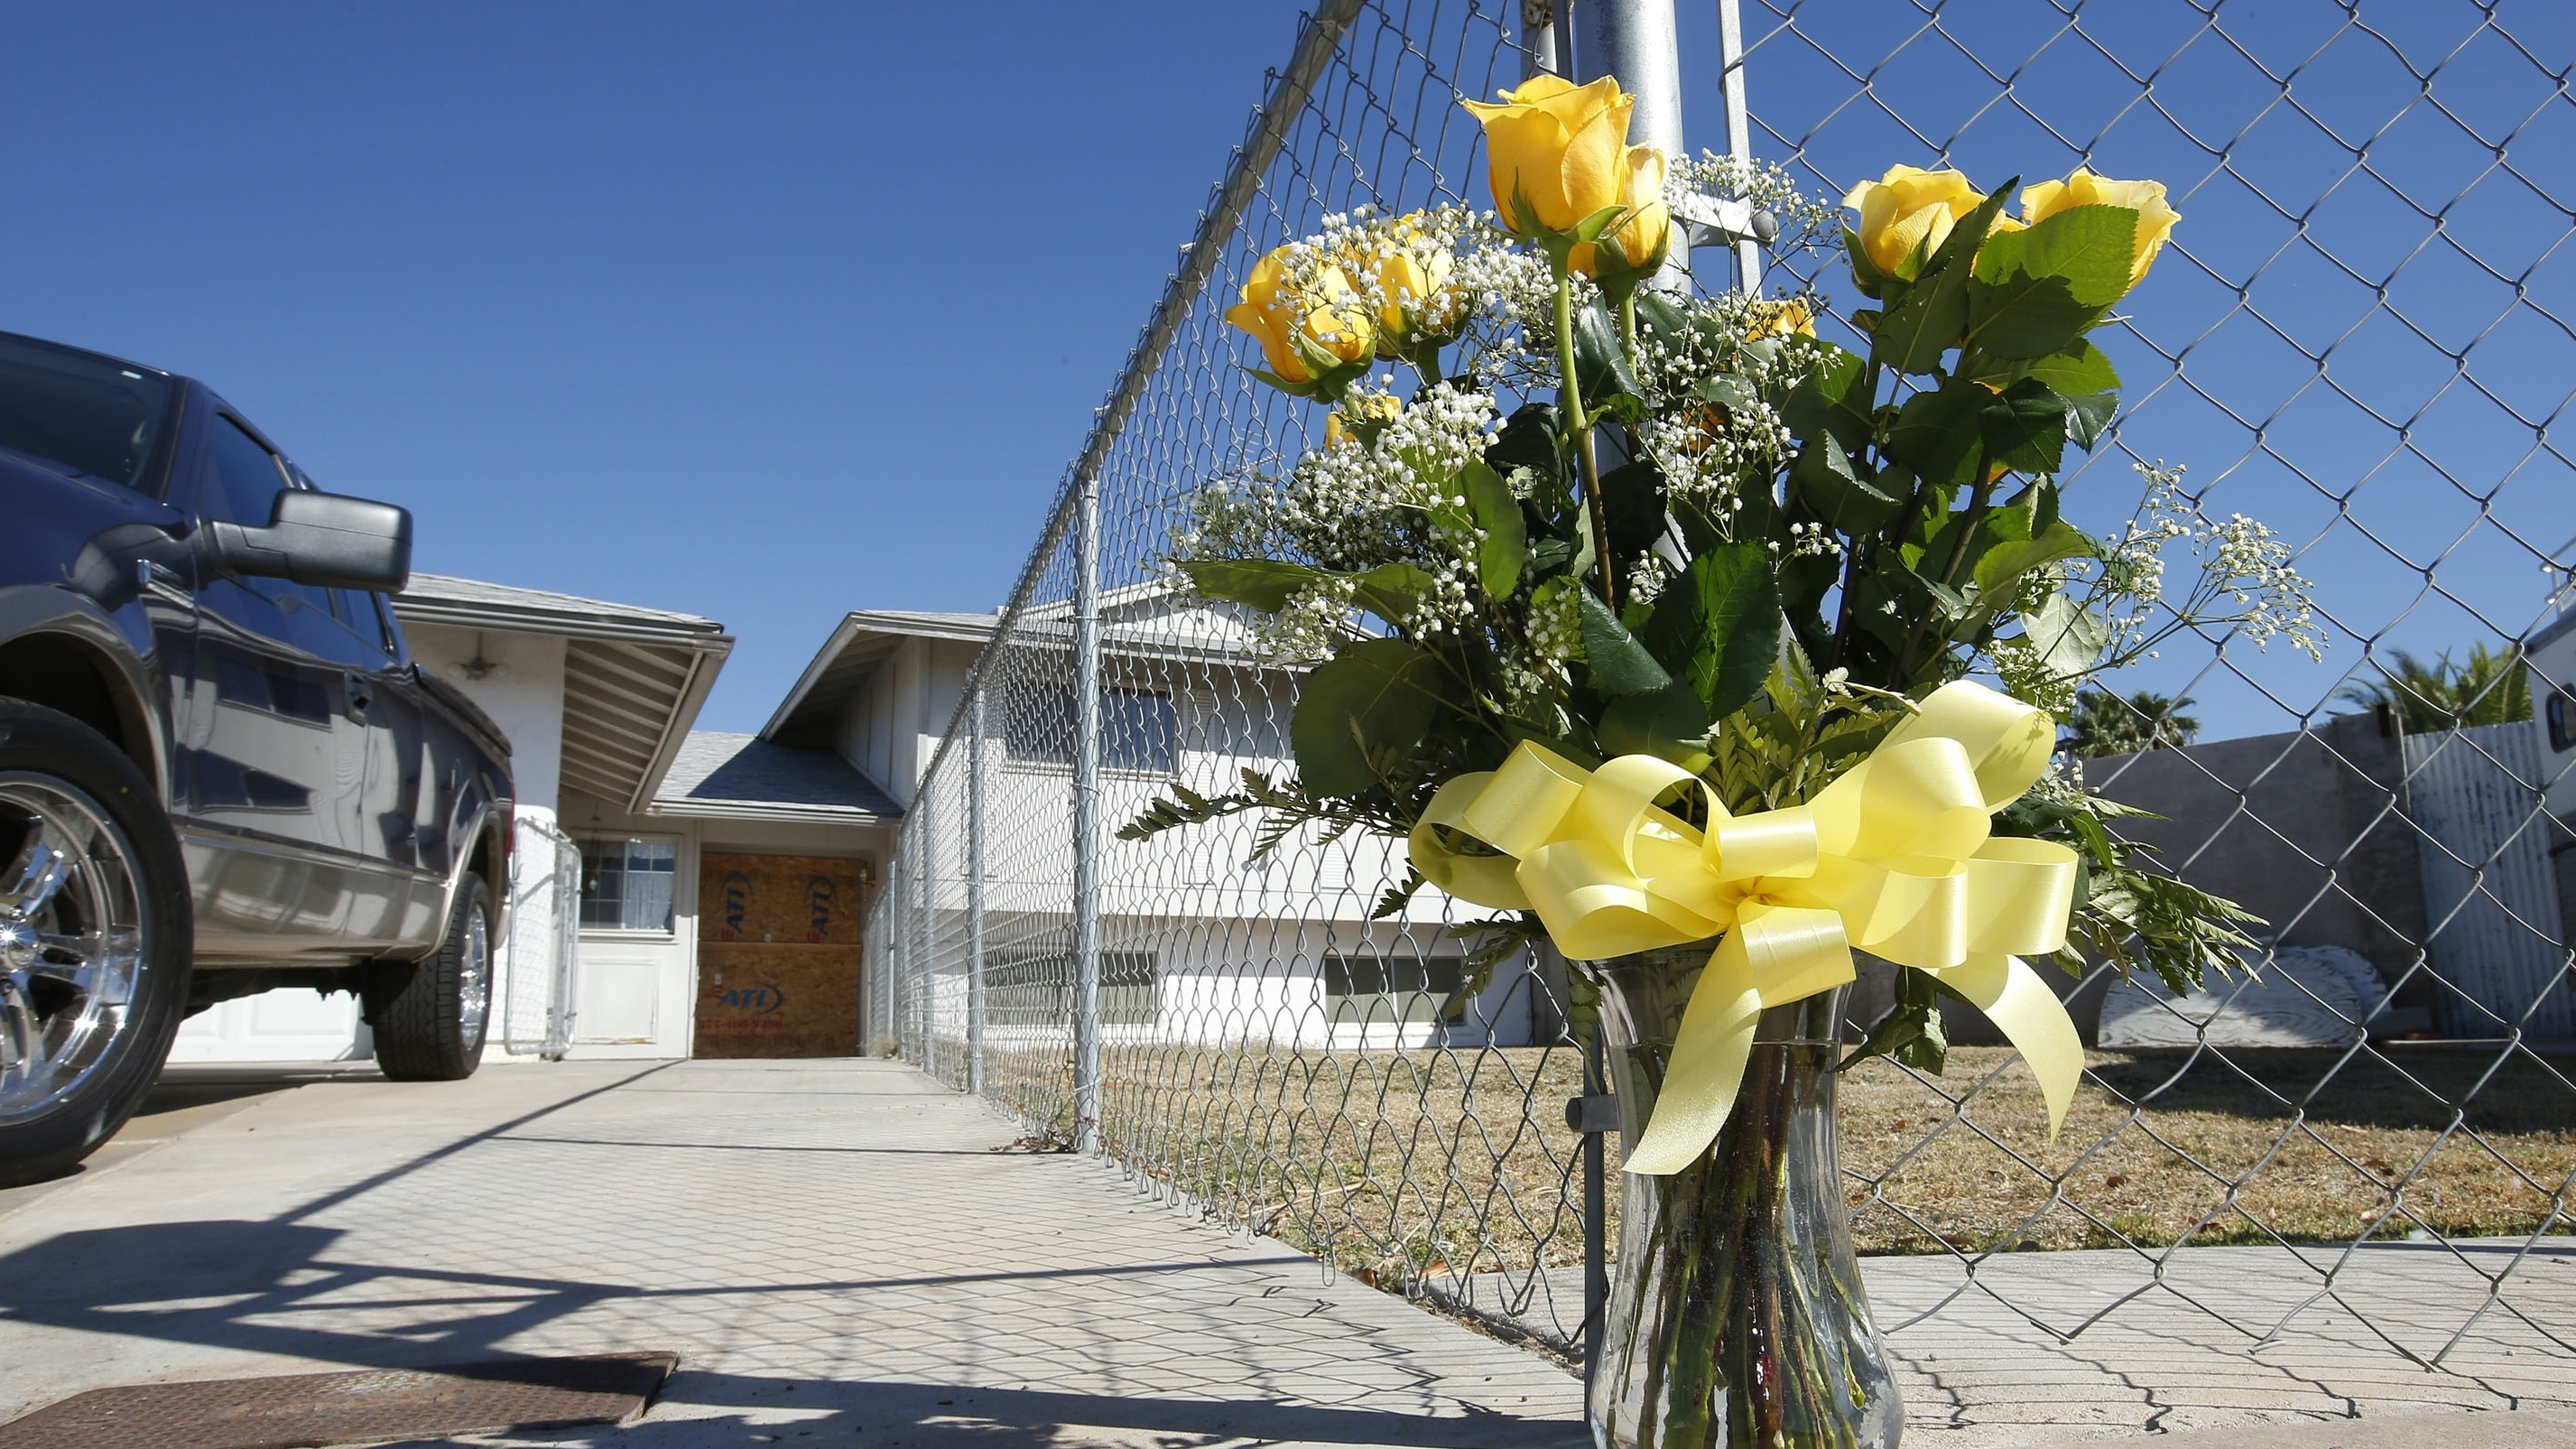 A Lone Bouquet Of Flowers Stands In Front Of A Home In Phoenix In